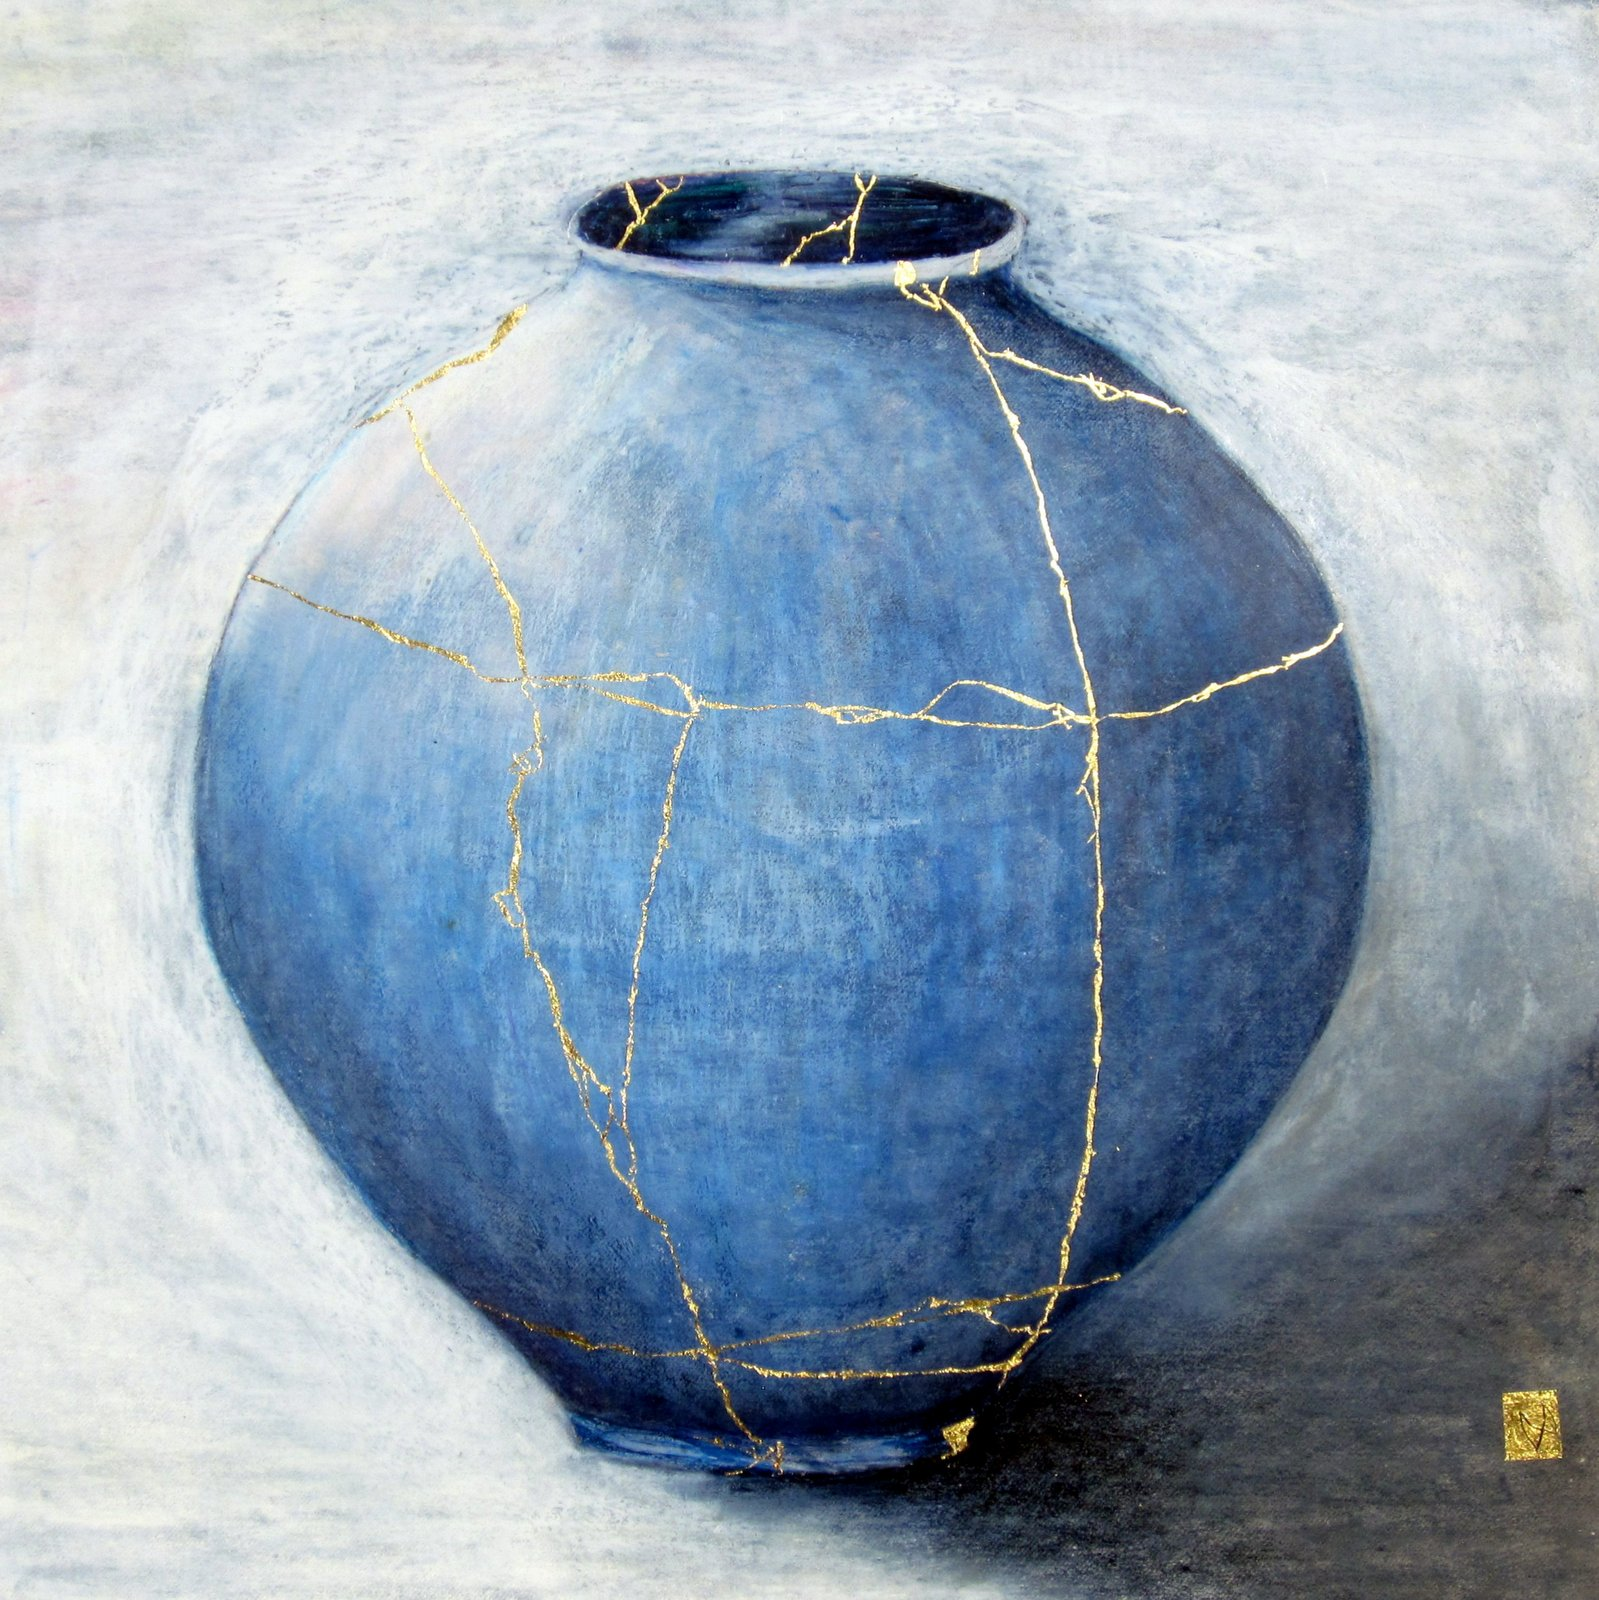 Contemporary large kintsugi vessel with gold repair – light and dark blues on grey